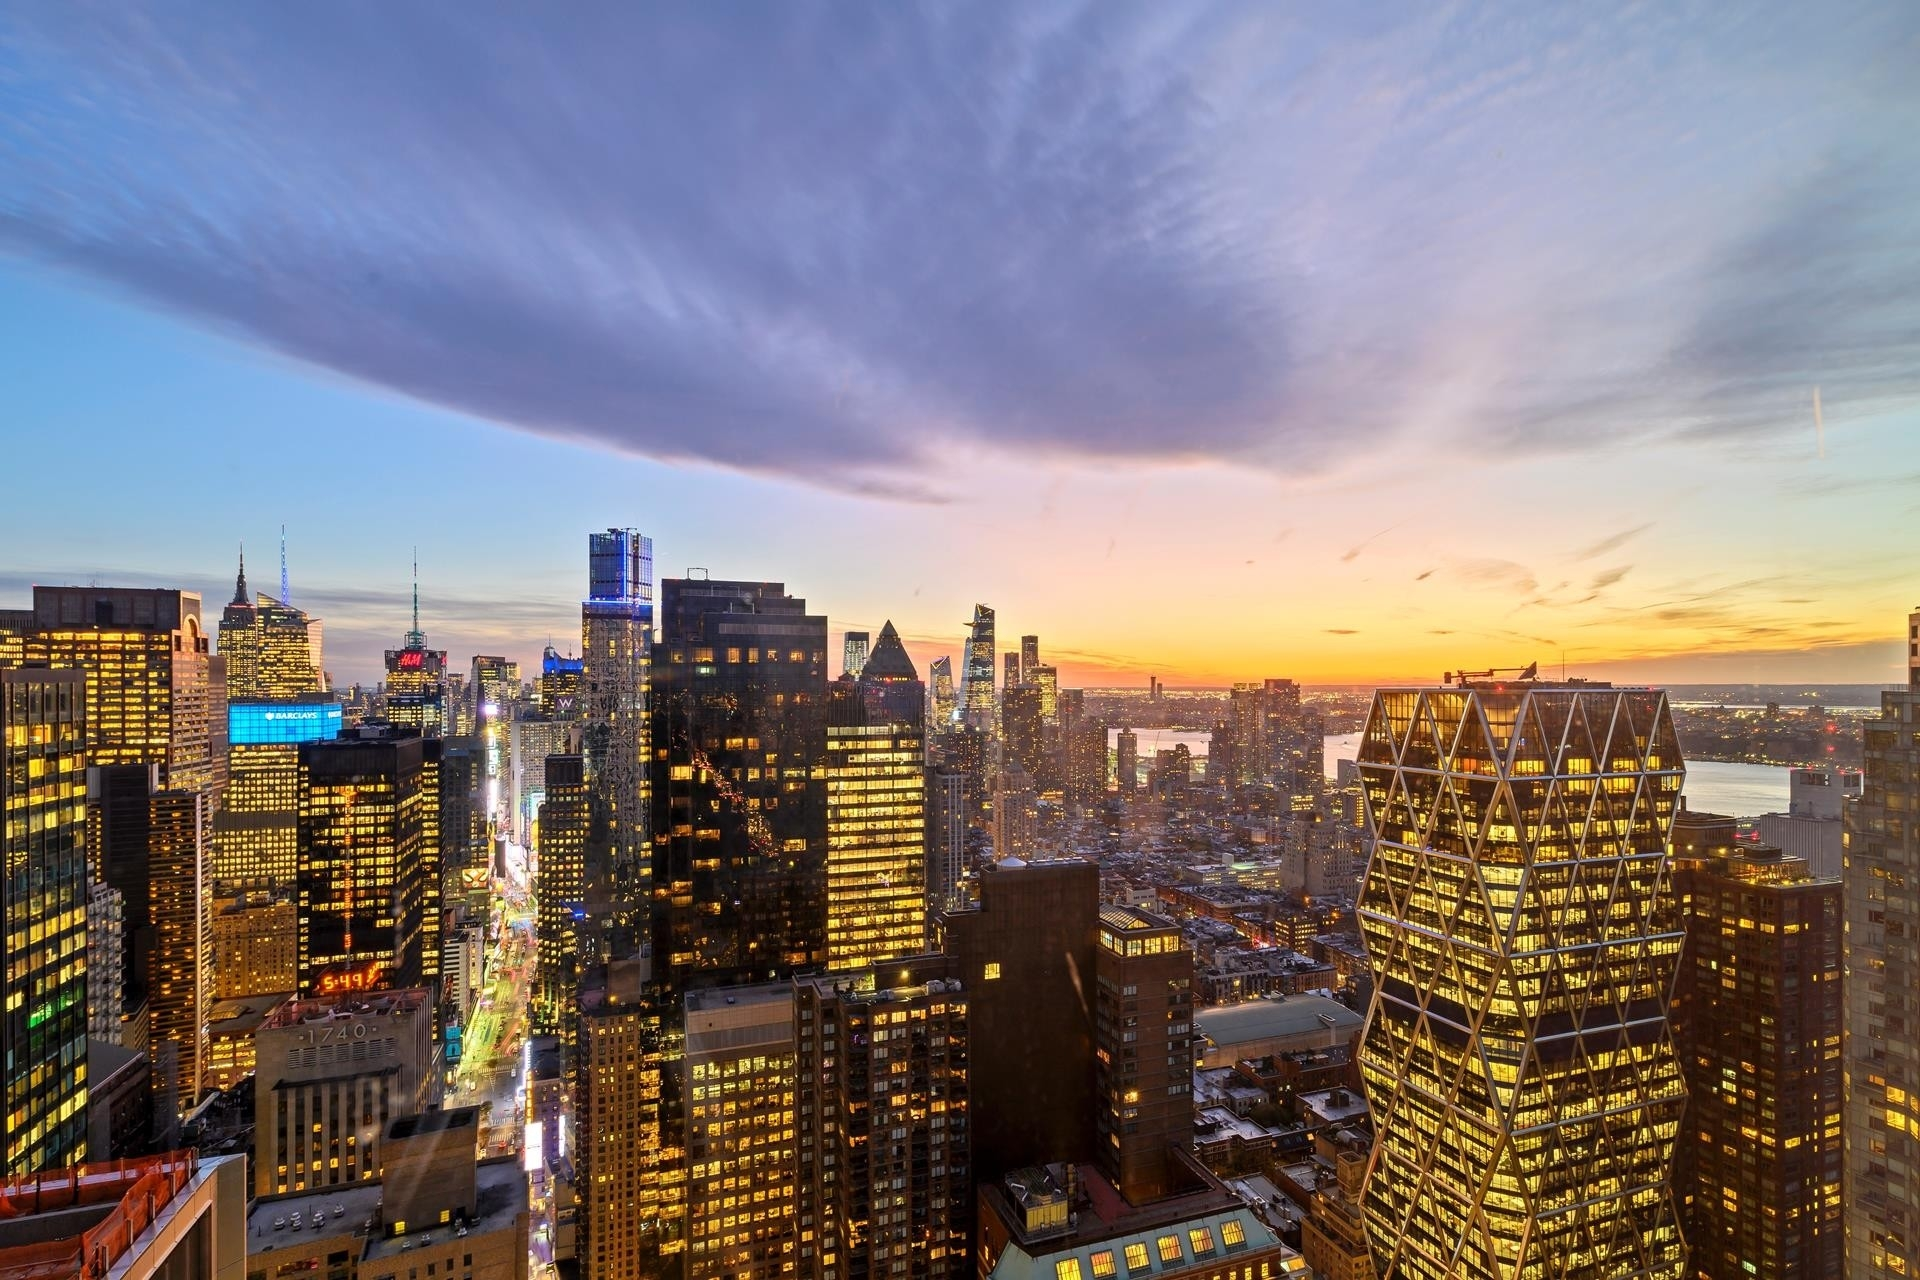 18. Condominiums for Sale at 220 CPS, 220 CENTRAL PARK S, 54/55A Central Park South, New York, NY 10019